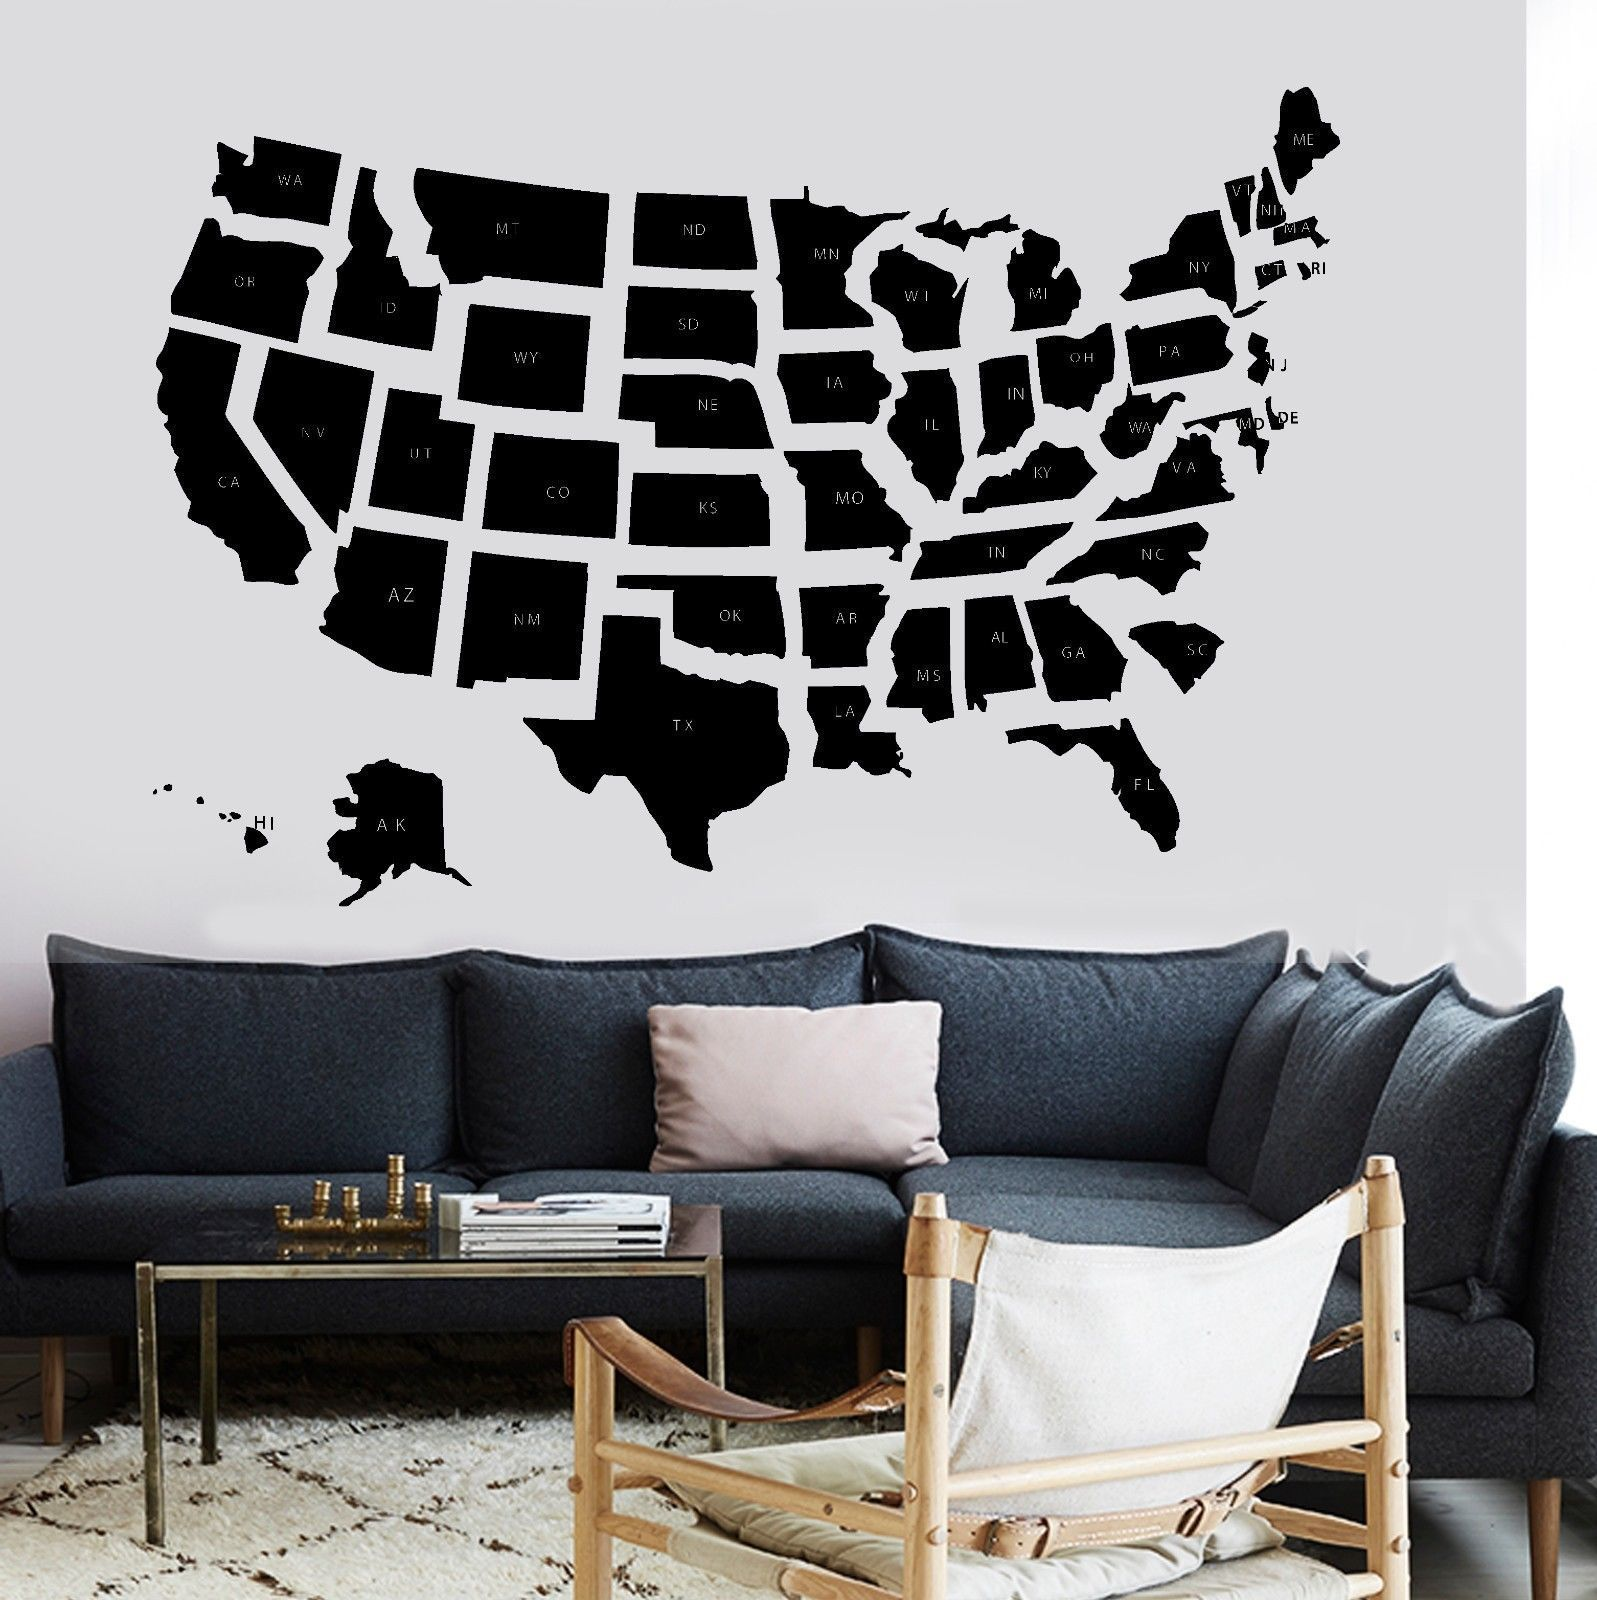 new popular home wall decal map usa premium quality school states vinyl sticker free shipping